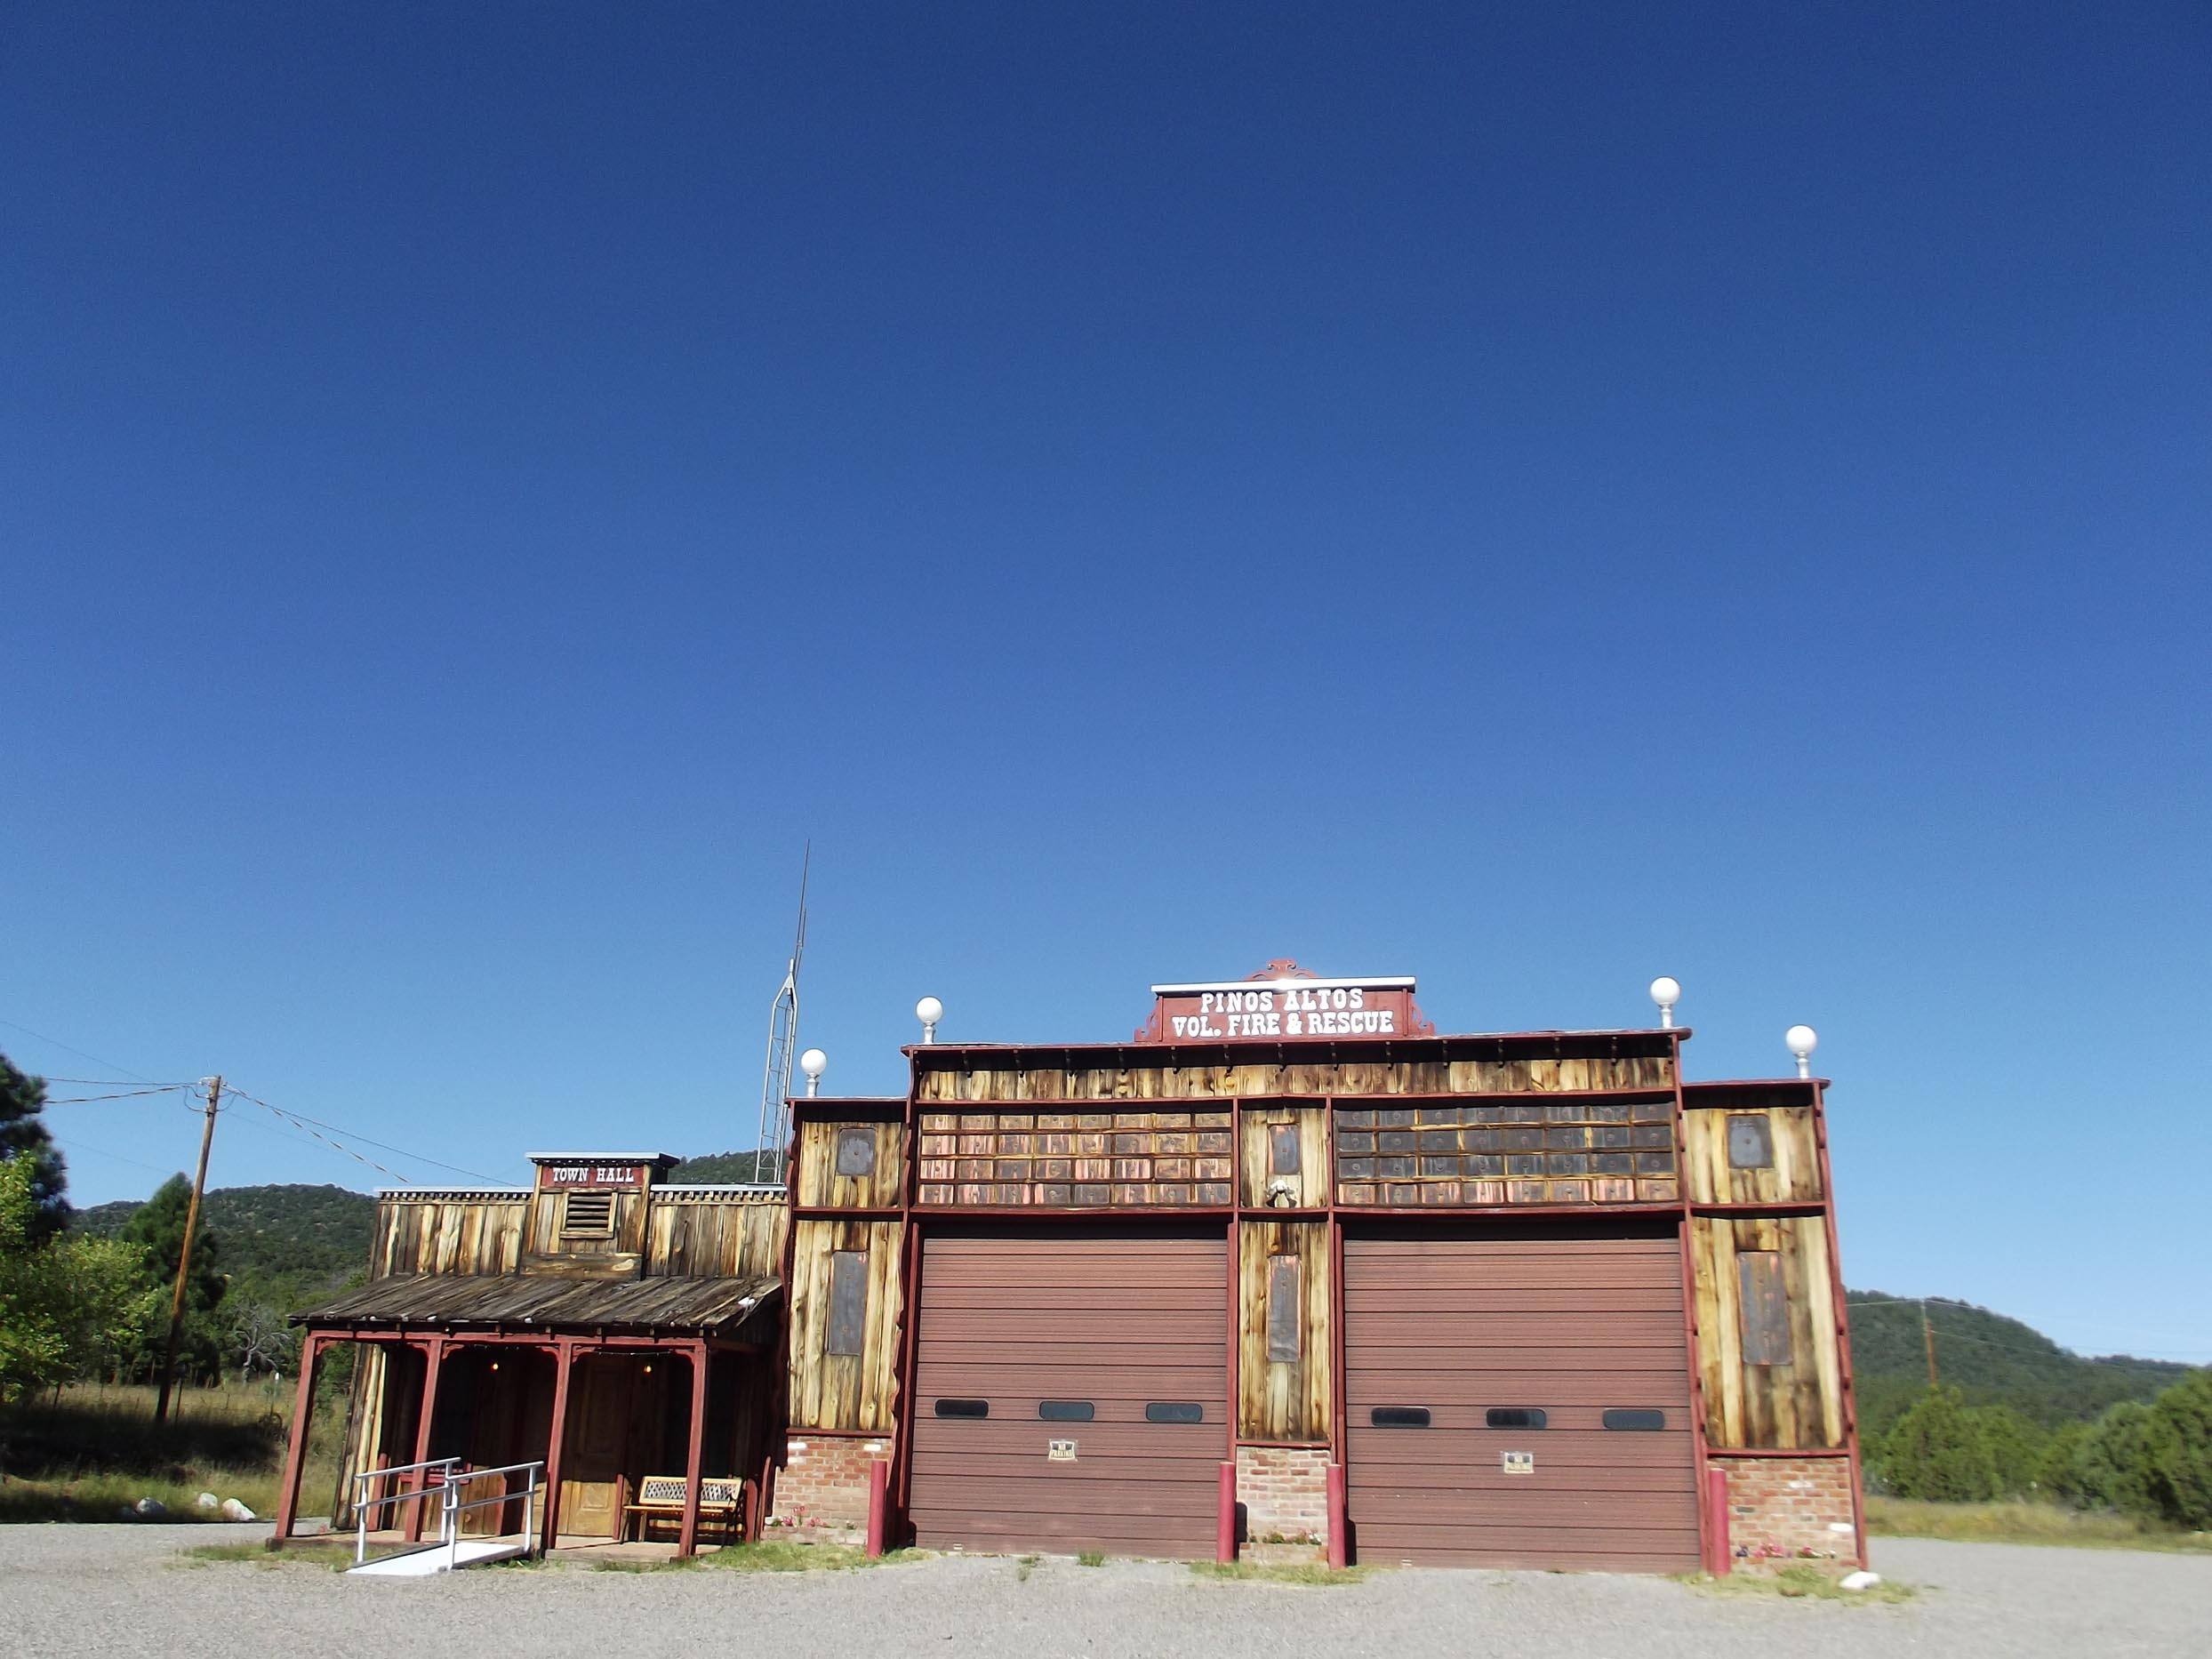 Old wooden fire station